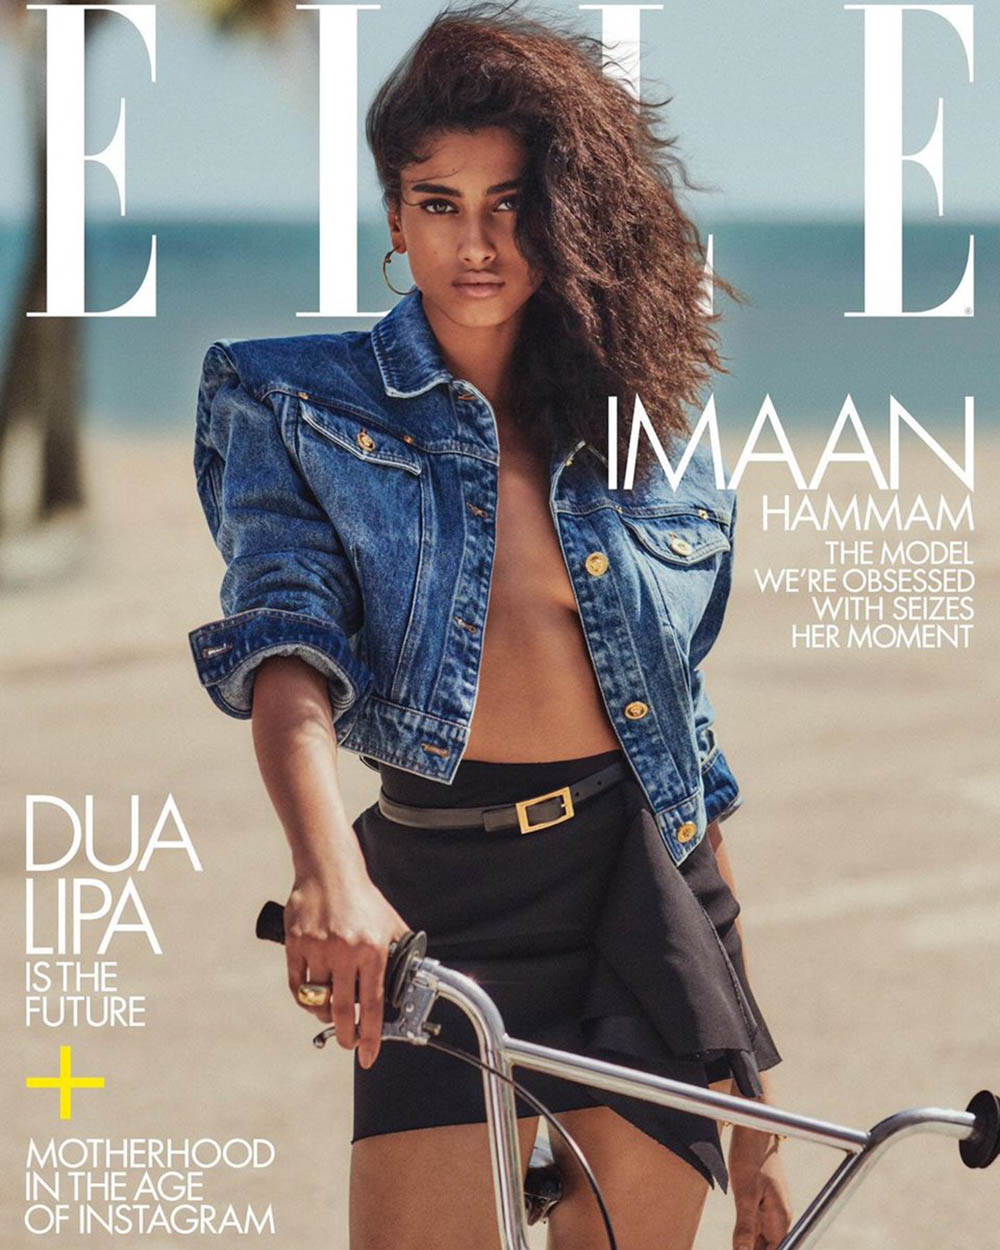 Imaan Hammam covers Elle US May 2020 by Chris Colls